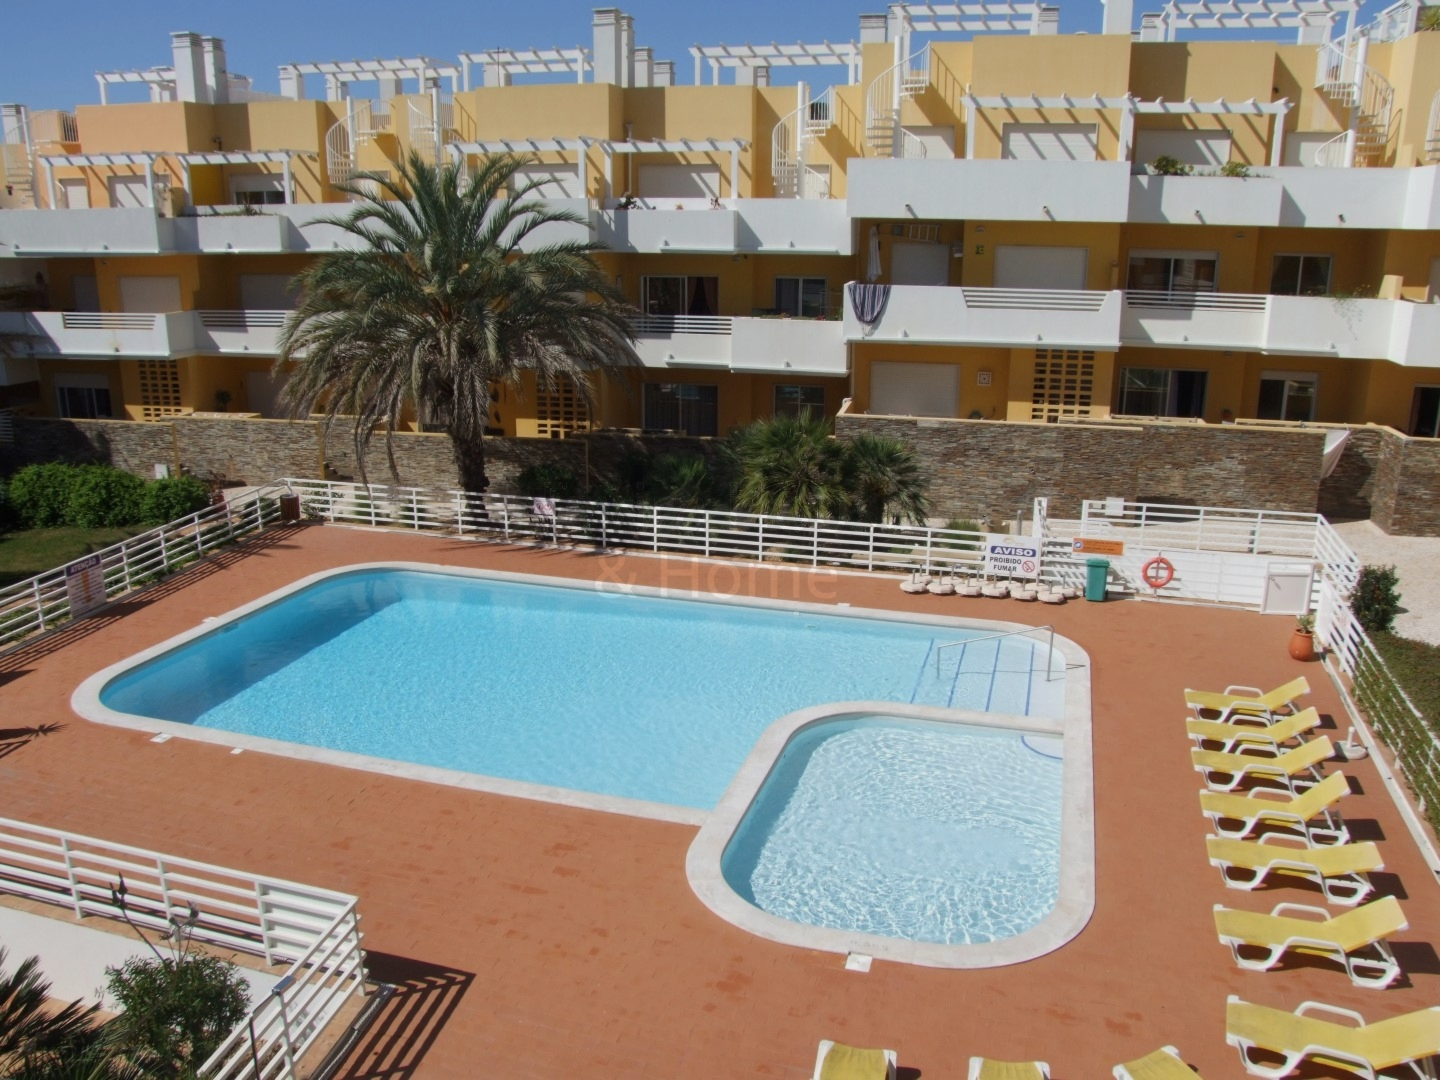 A0524 - 2 Bedroom Apartment With Pool  Tavira  Cabanas  Portugal